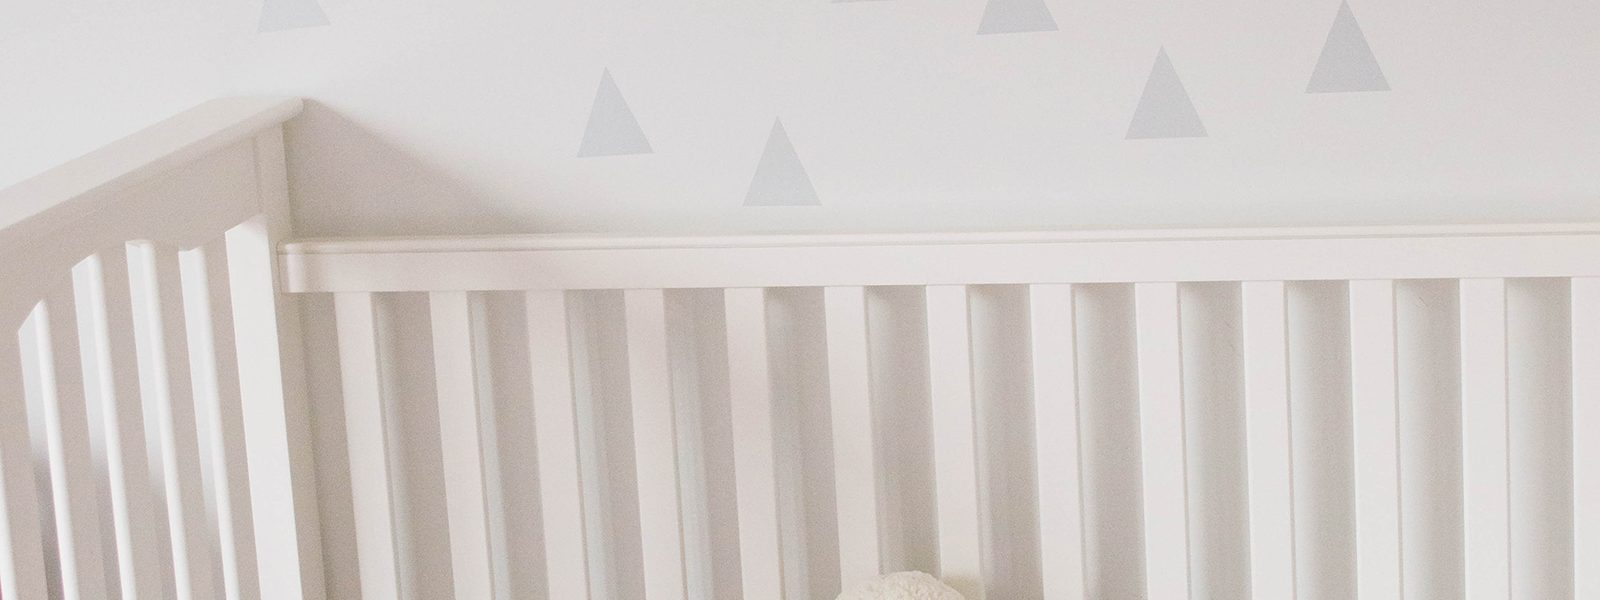 Room Reveal: Toddler-Bed Ready – How to Set Up Your New Toddler Bed